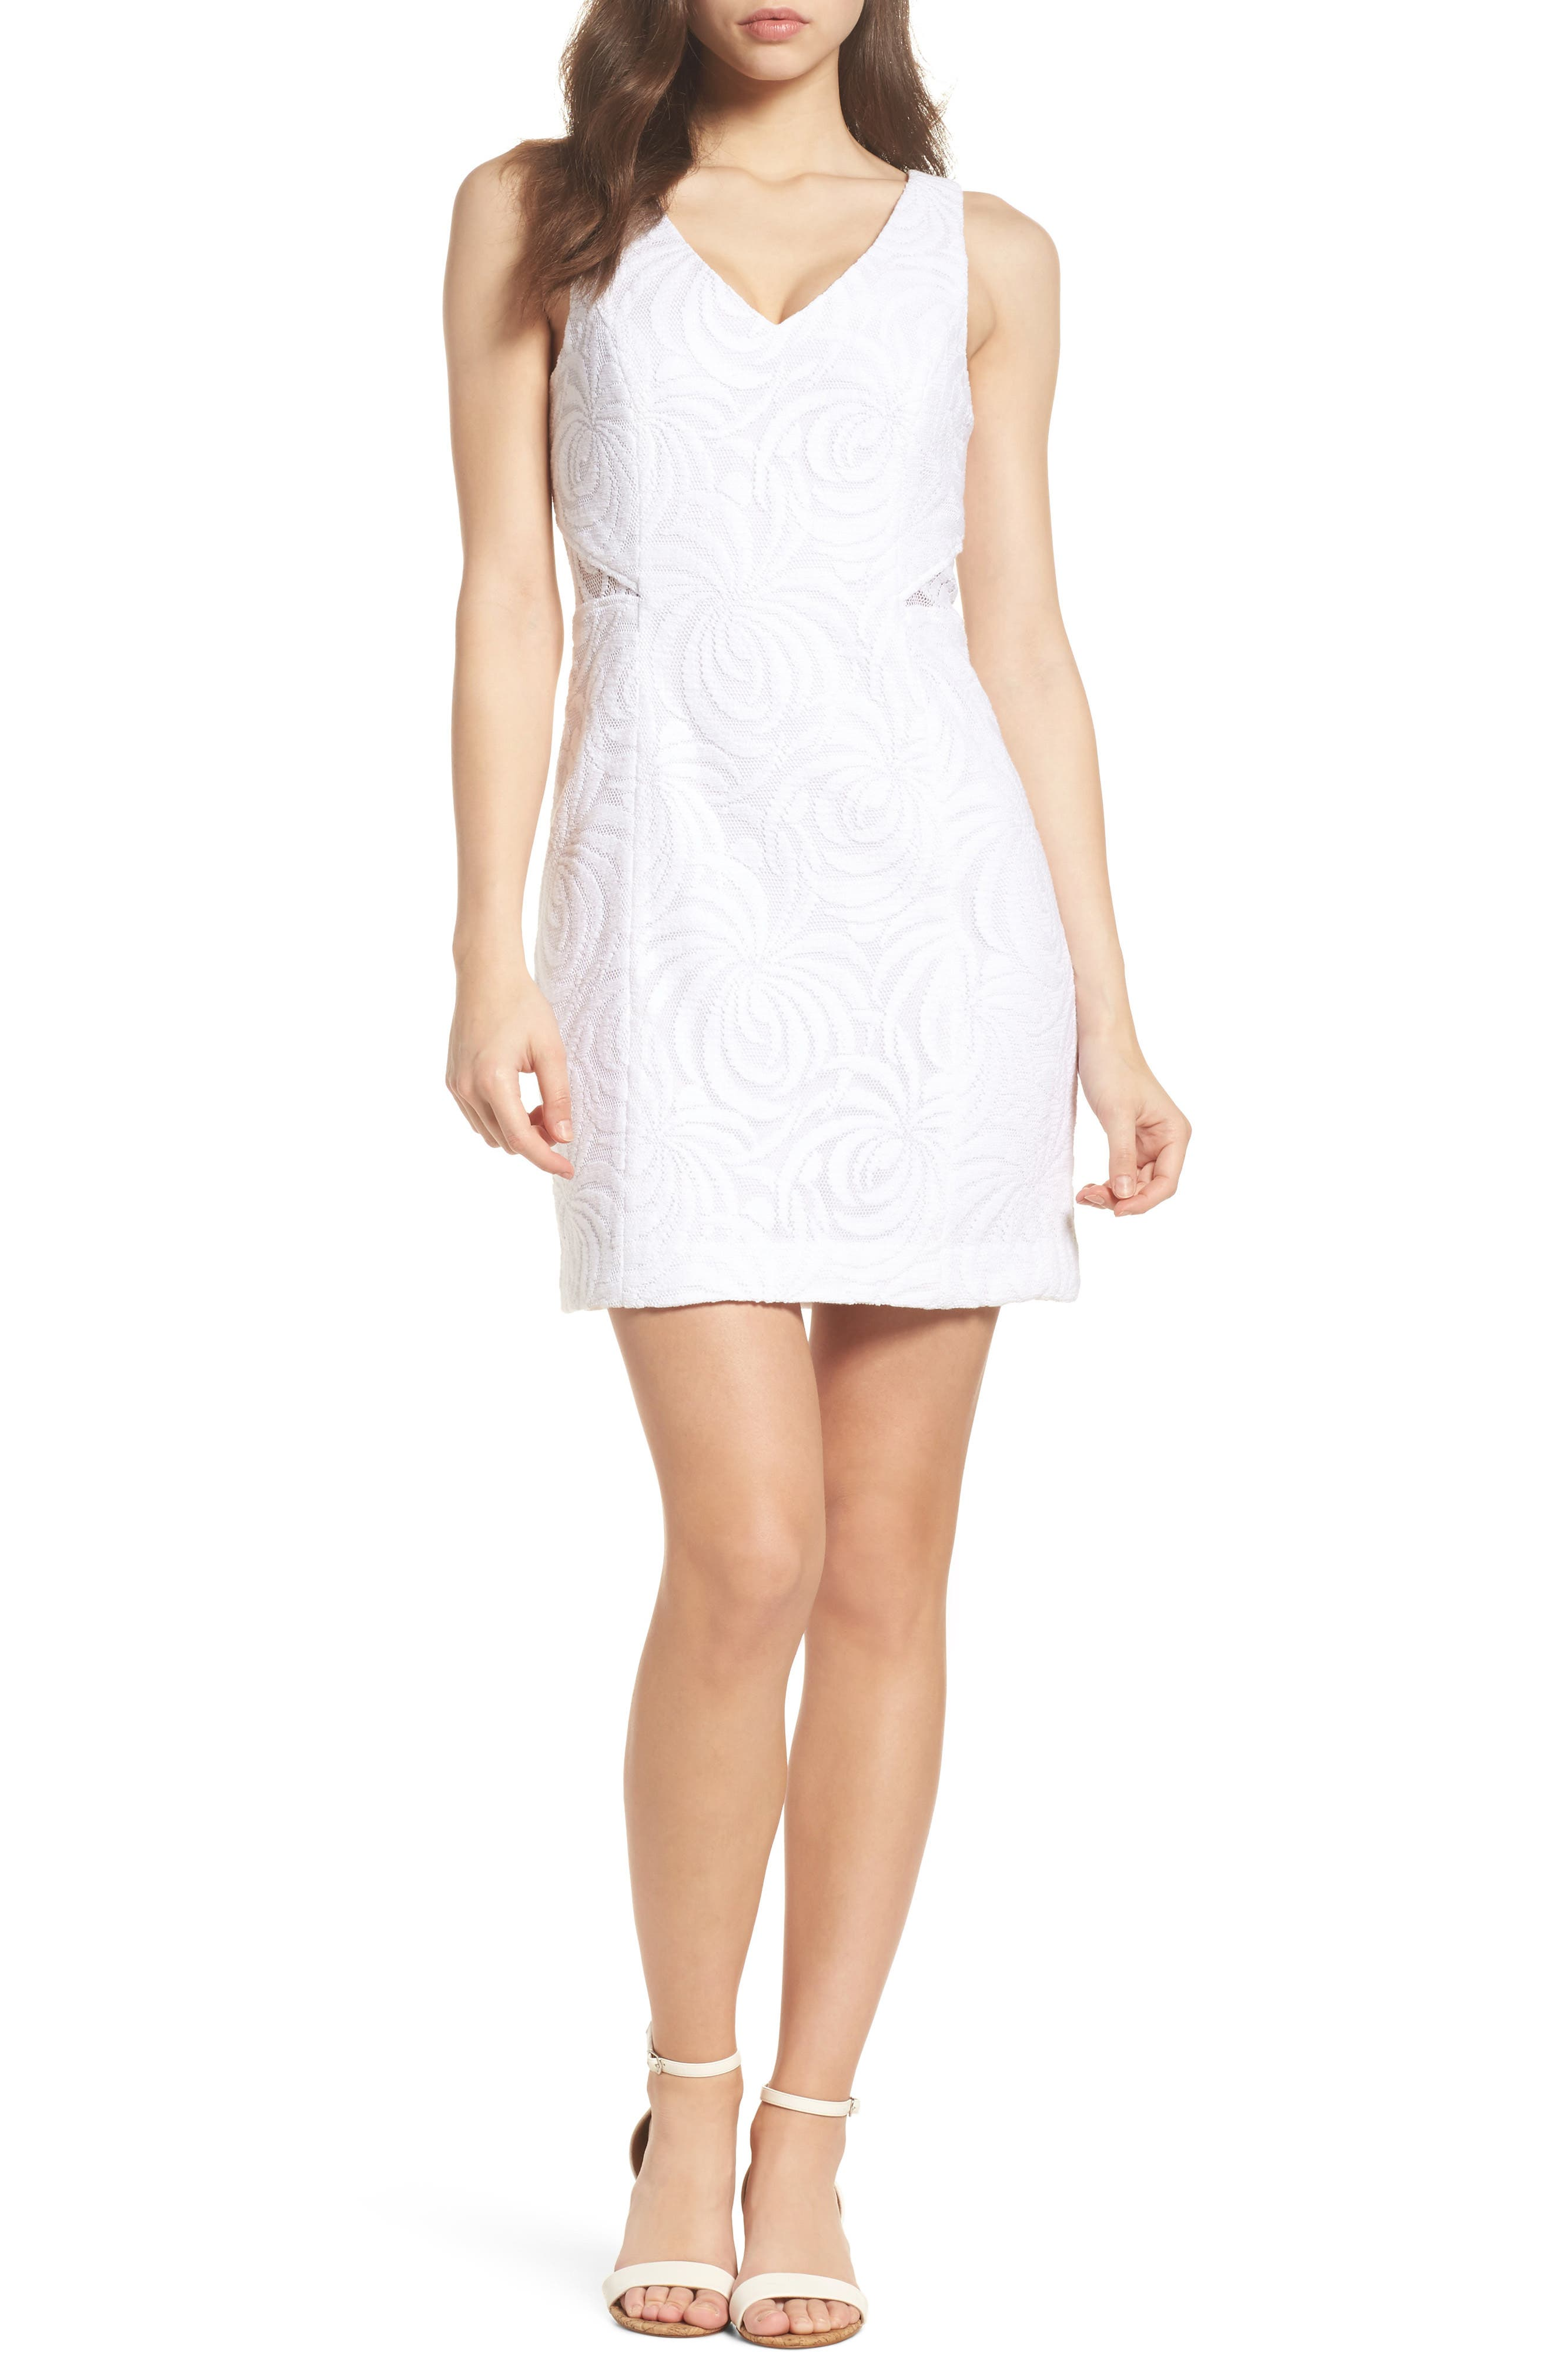 Blakely Lace Shift Dress,                         Main,                         color, Resort White Sea Swirling Lace